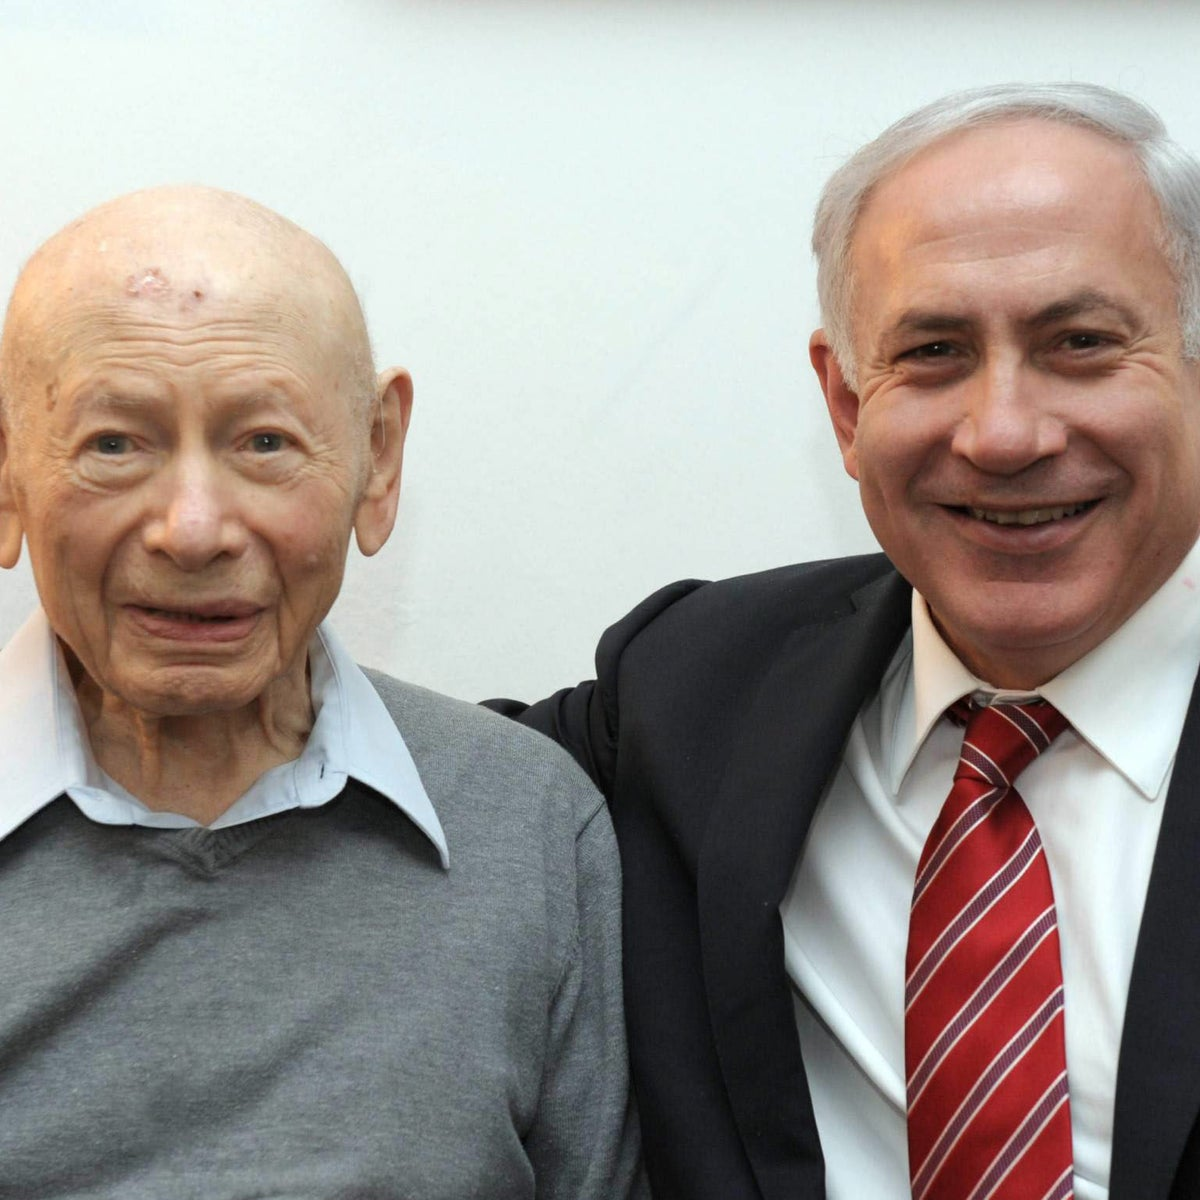 Prime Minister Benjamin Netanyahu, right, with his father Benzion. The latter died in 2012 at age 102.